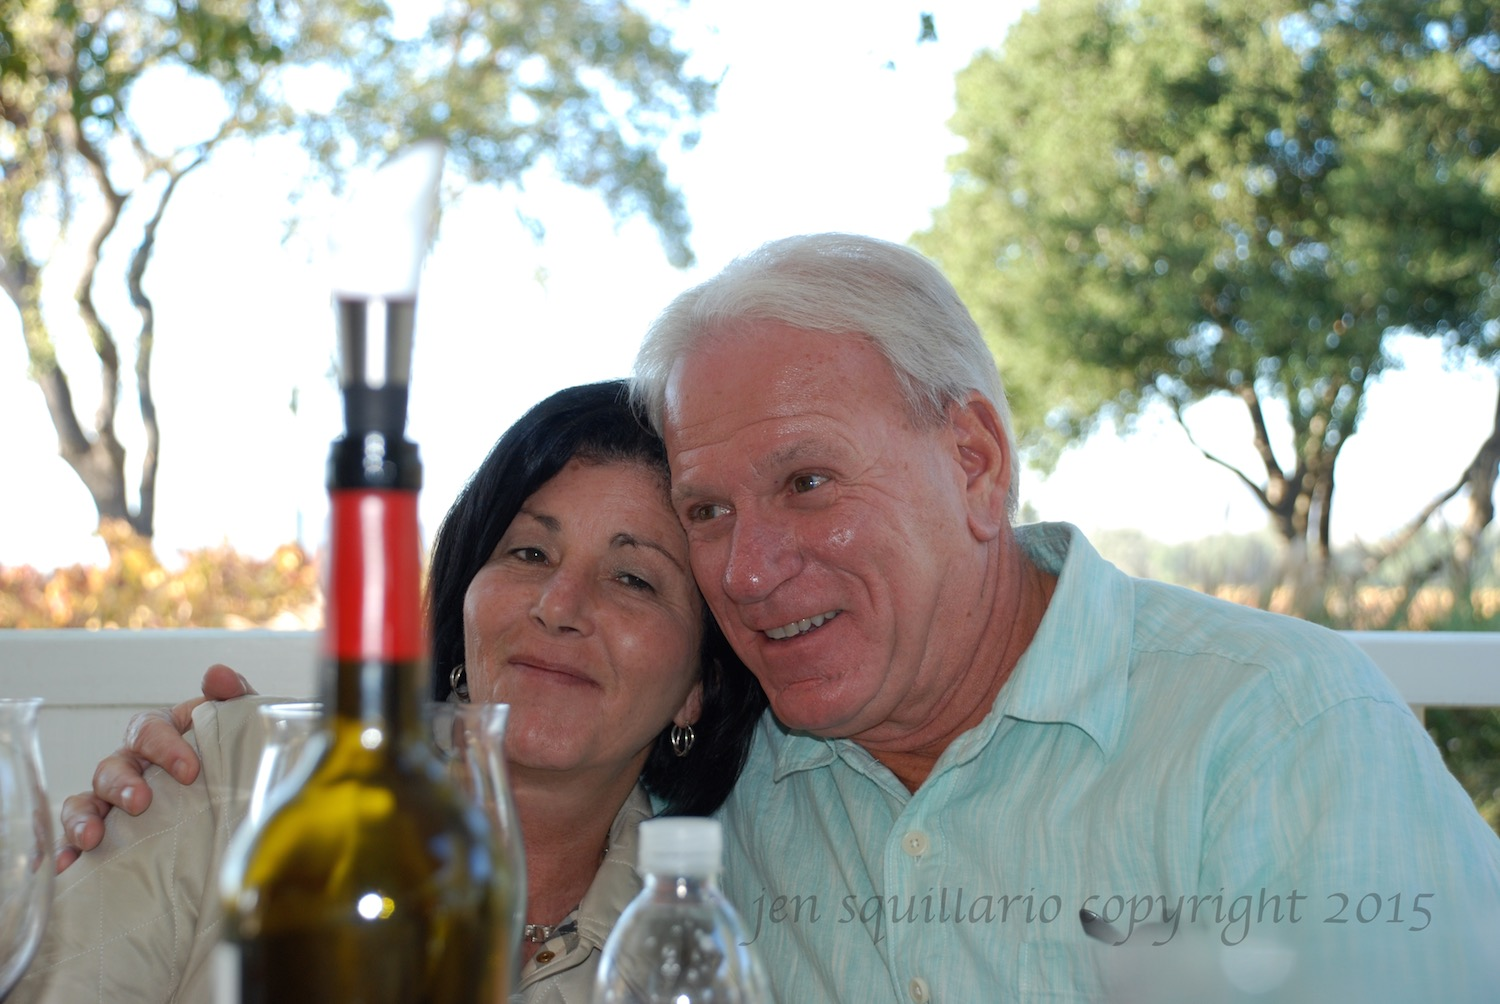 Lunch at a Winery (2008)